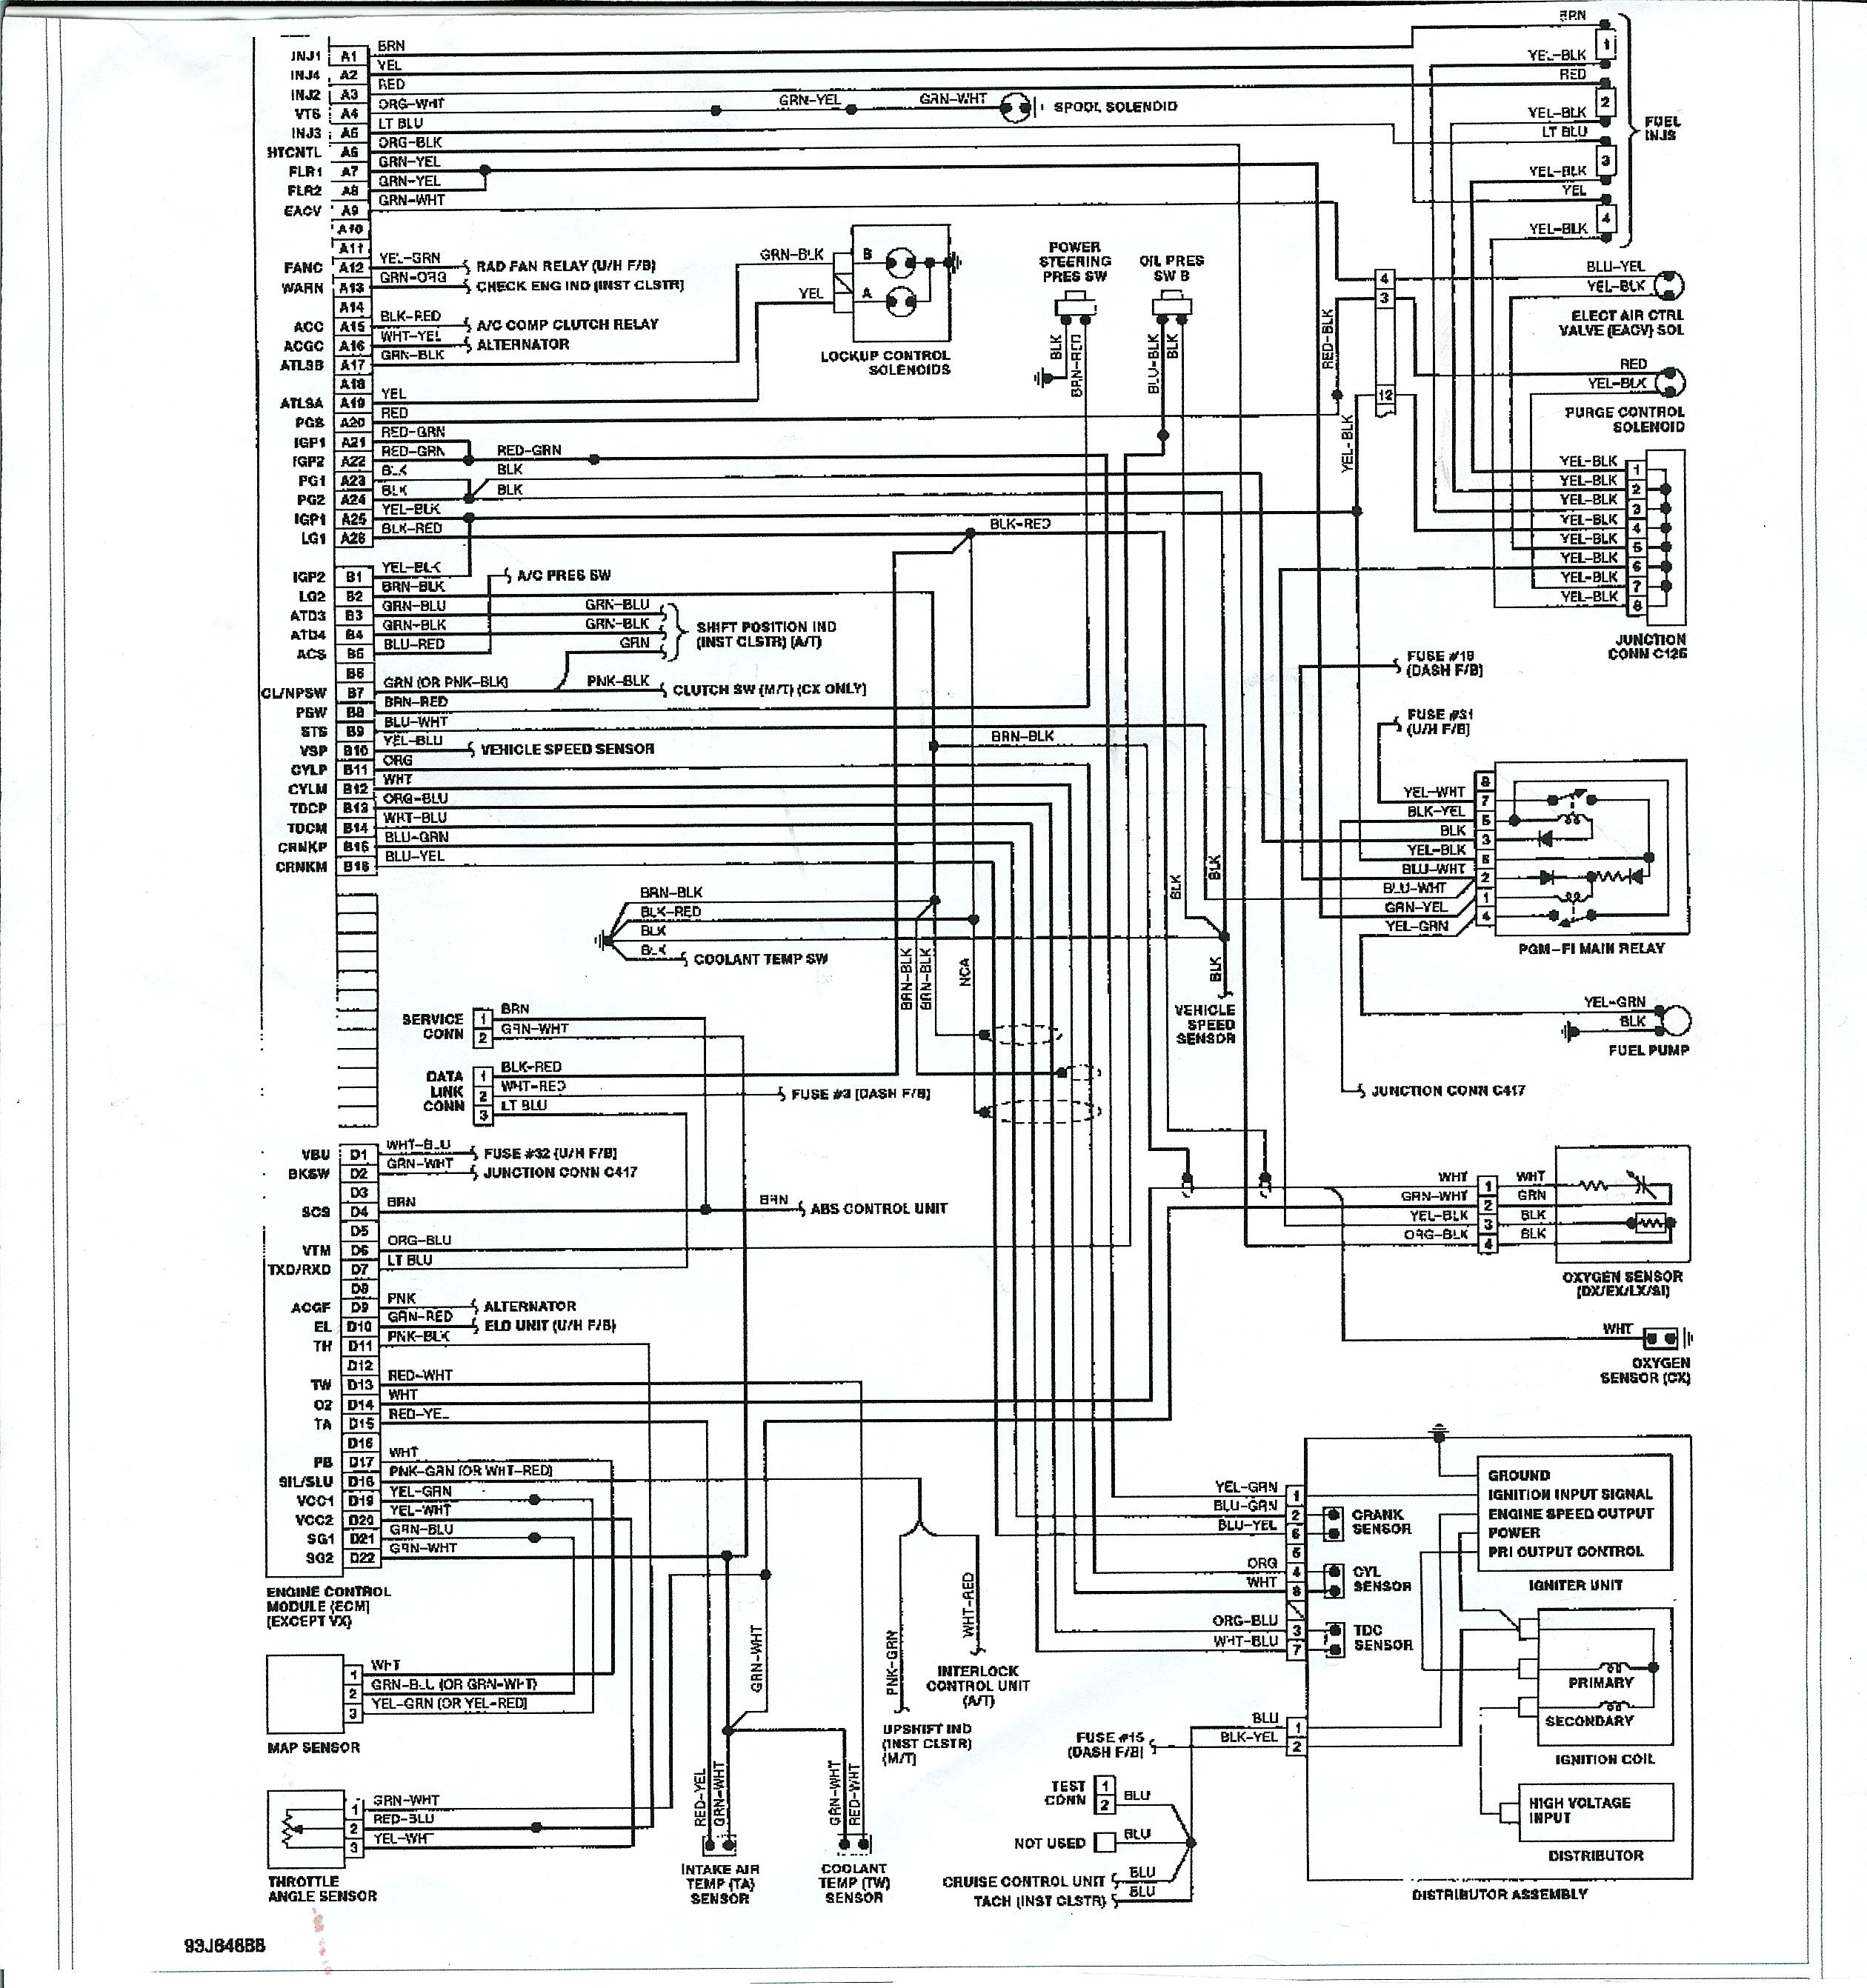 403660d1445082998 integra tcm wiring schematic auto swap dxecu diagrams 10001383 1994 acura integra wiring diagram 1996 1998 integra ls ecu wiring diagram at soozxer.org